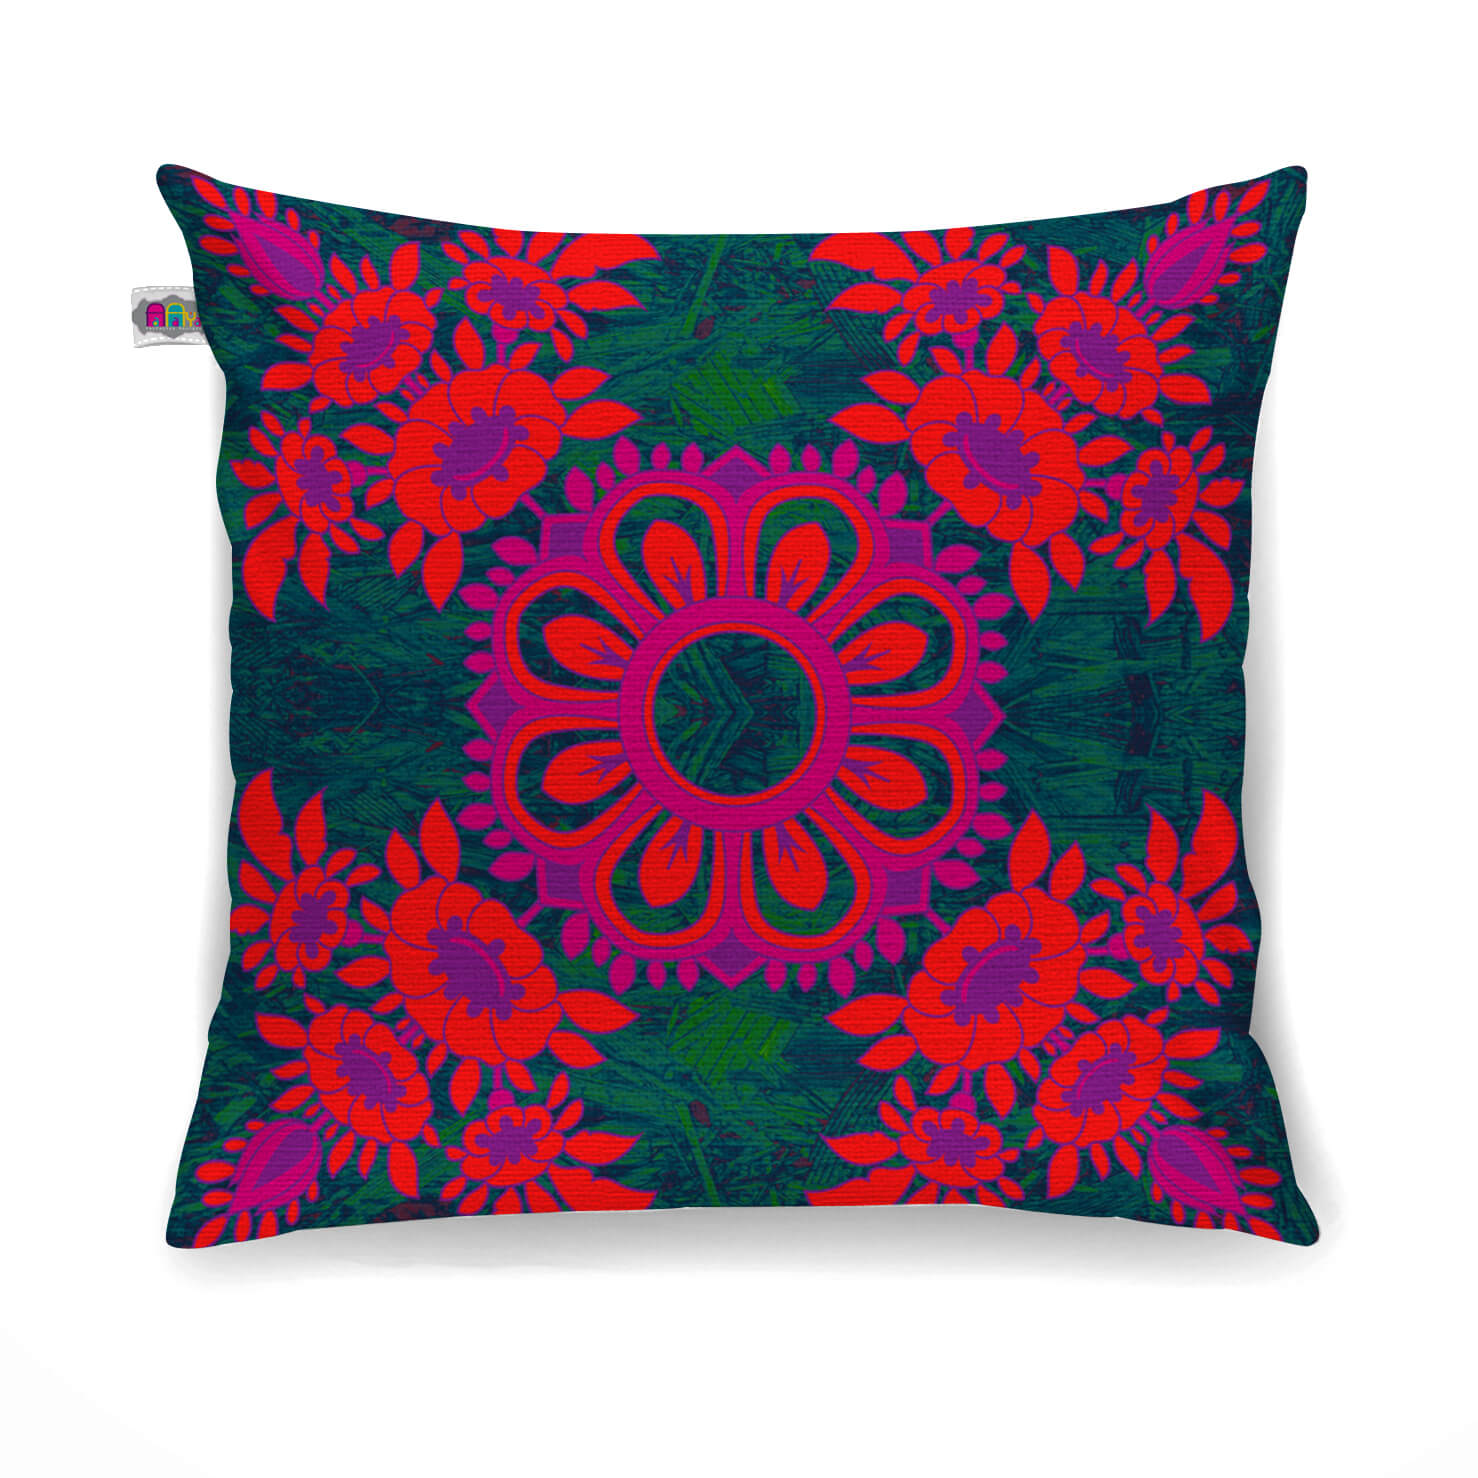 Magnificent Flower Motif Cushion Cover Set of 2